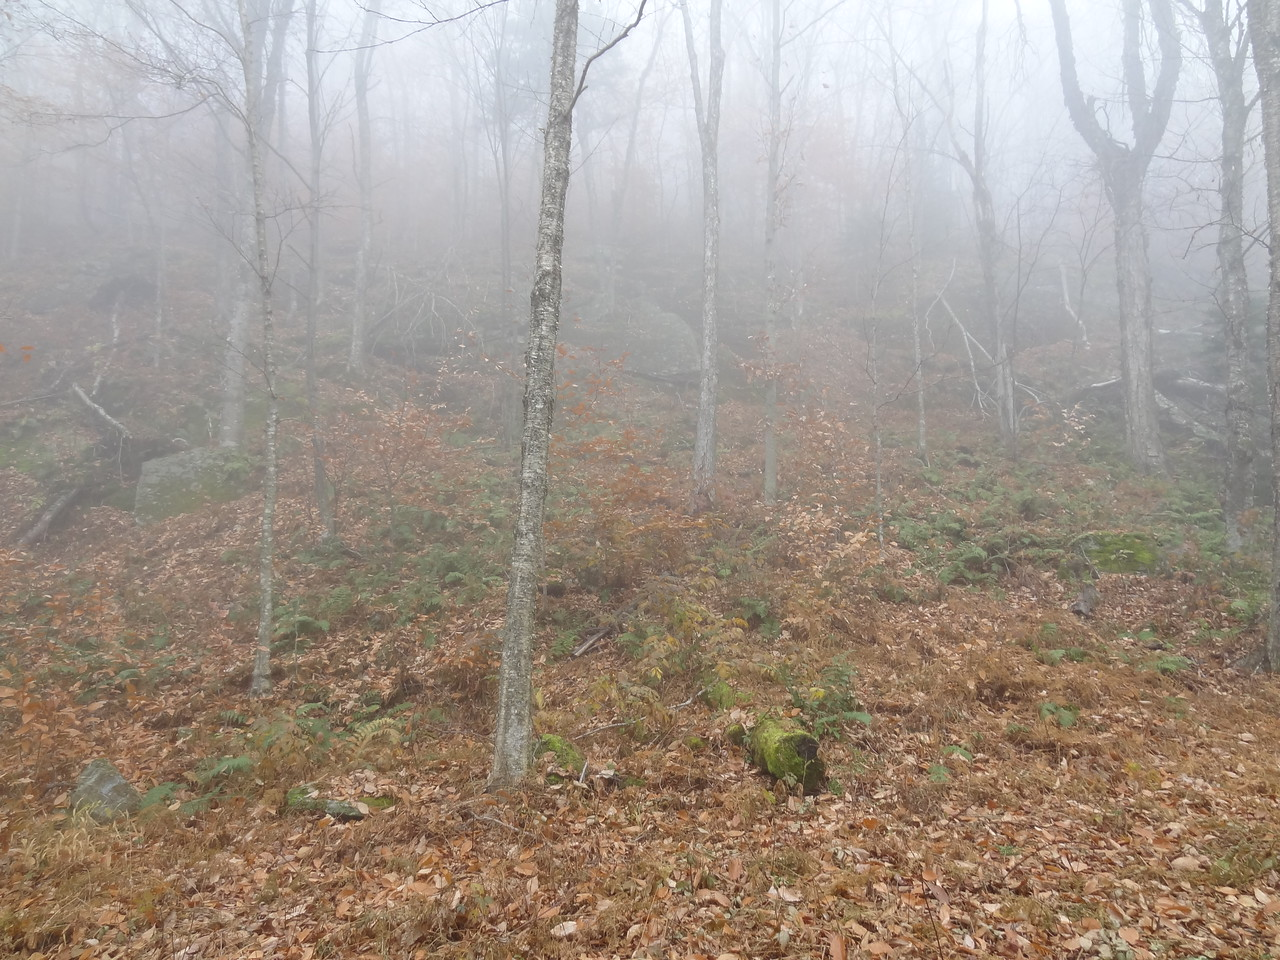 As we got steeper, the fog started getting thicker. We actually met a solo hiker here who turned back because of the spookiness so close to Halloween. He said it was too foggy to see but come on...